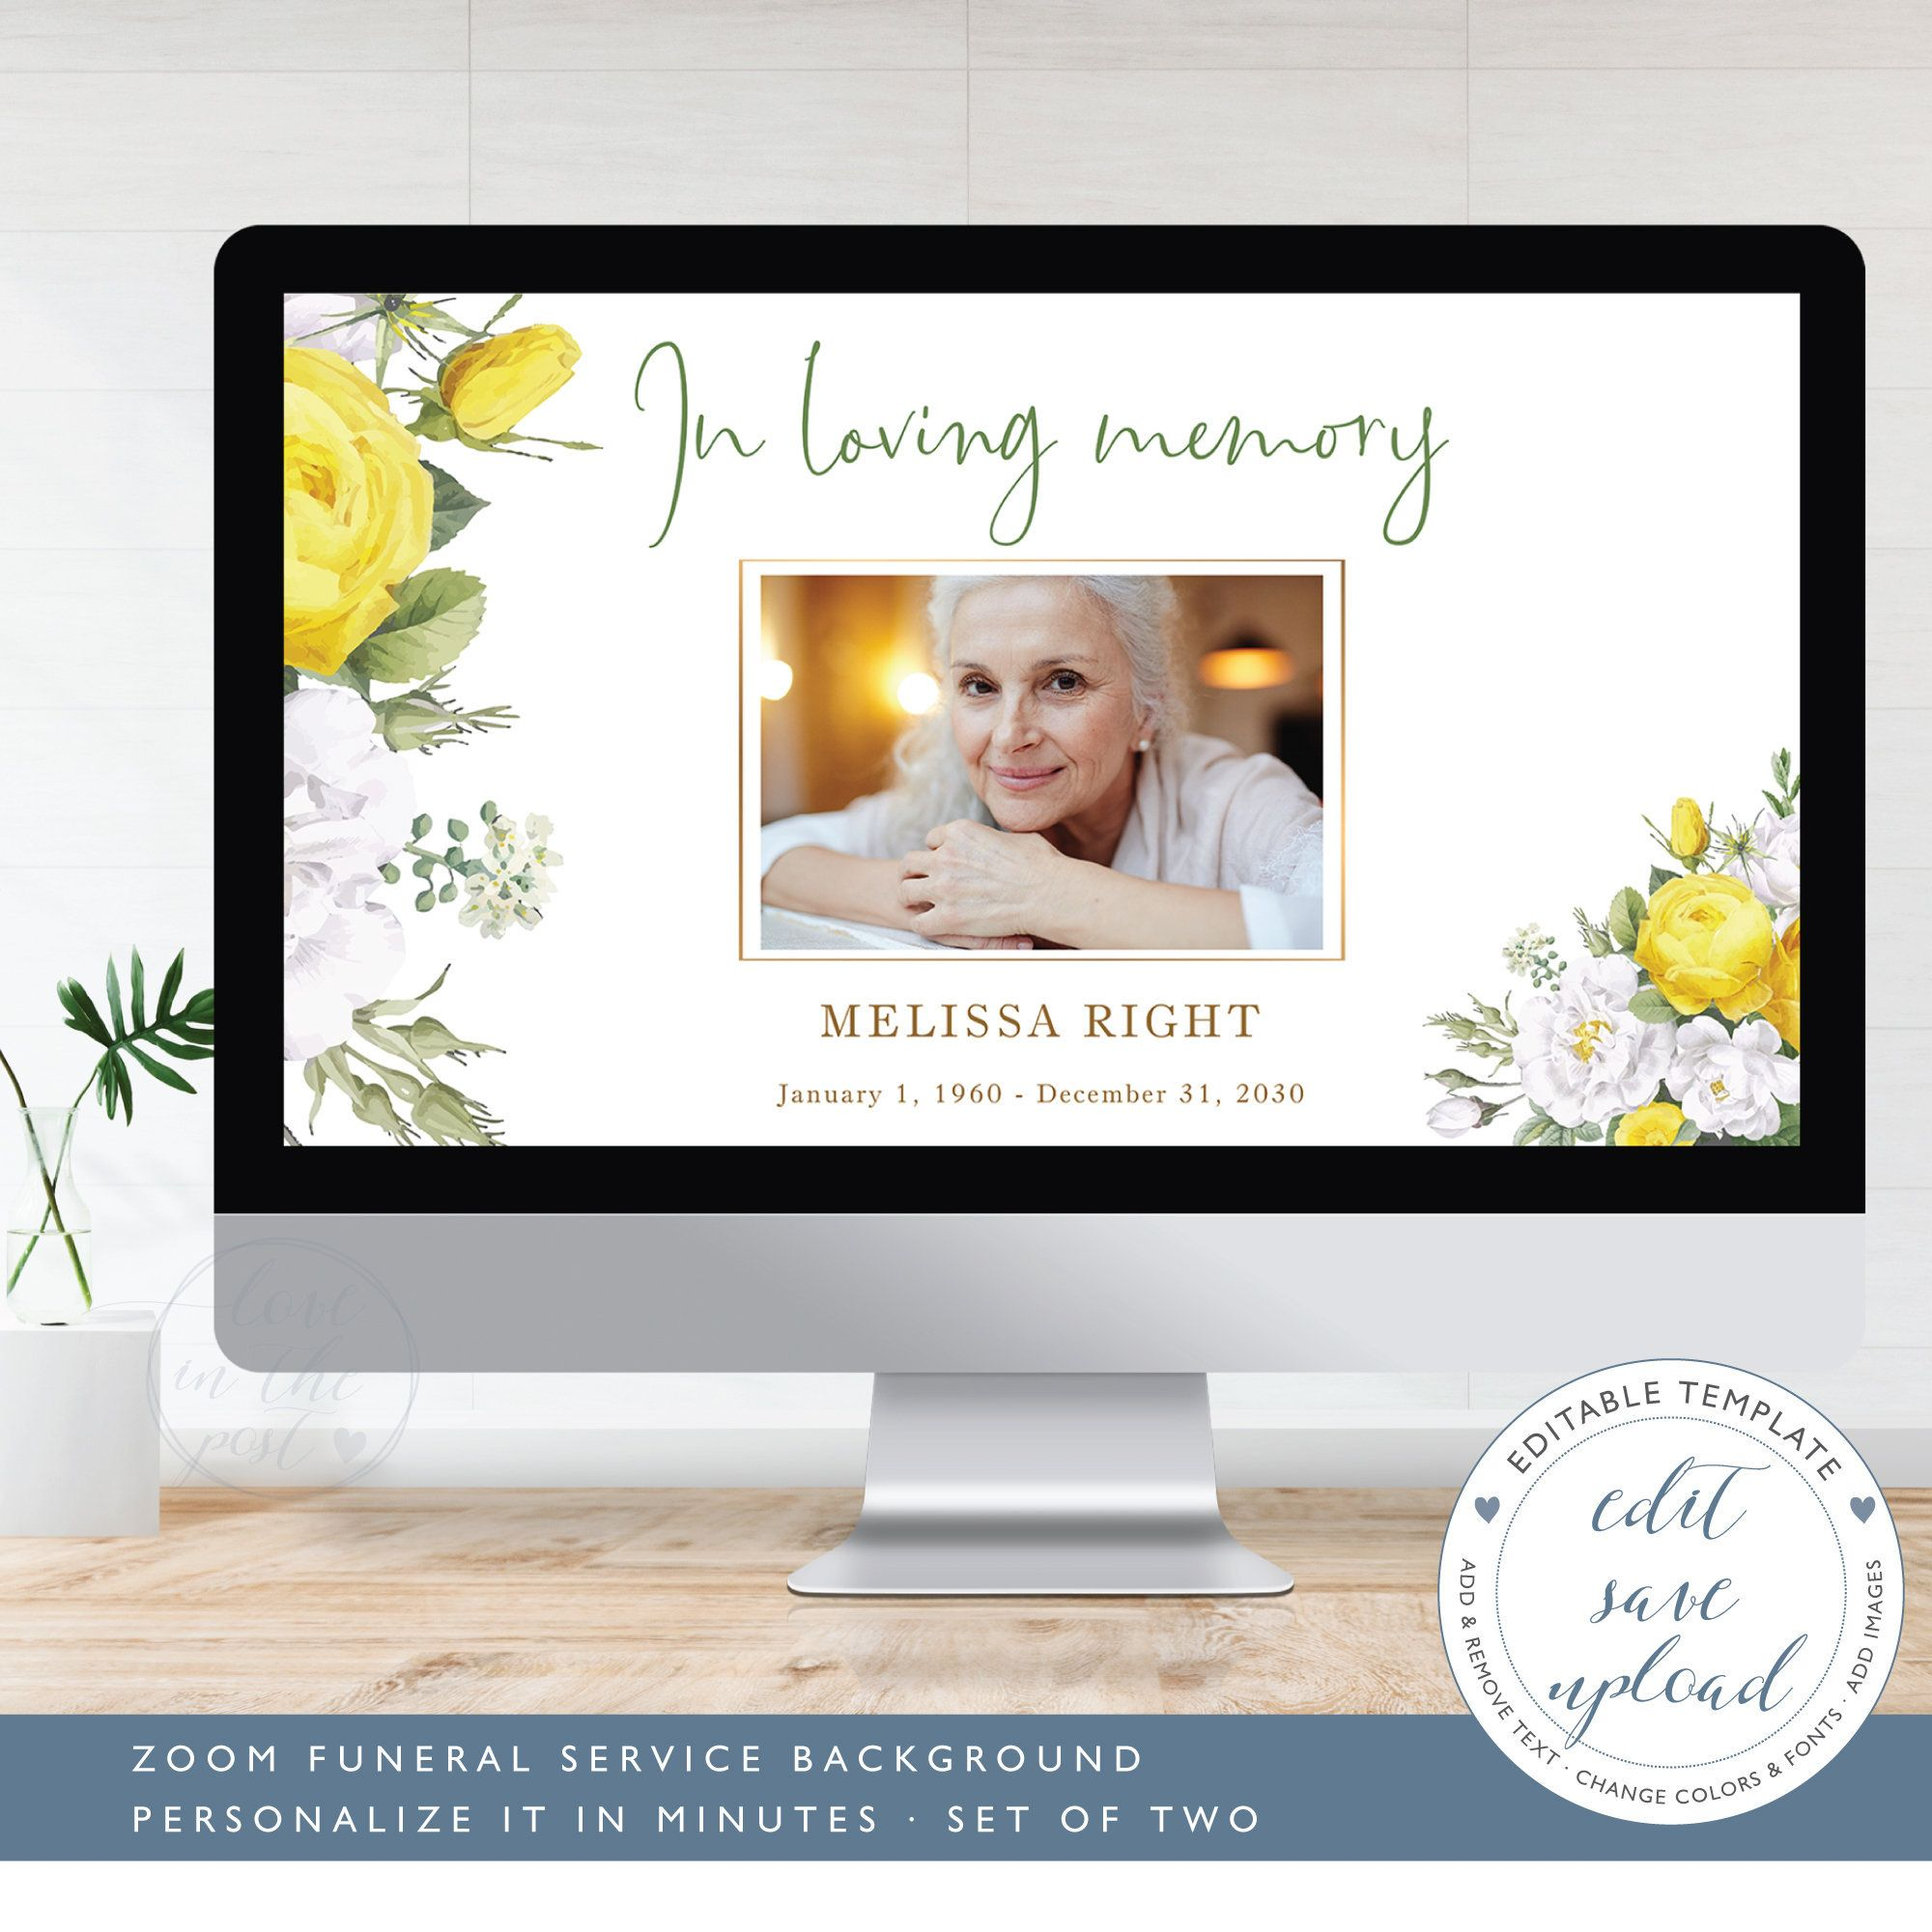 Virtual Funeral Background Zoom Template For Virtual Memorial Service Editable Zoom Background For Funeral Set Of Two Ff4